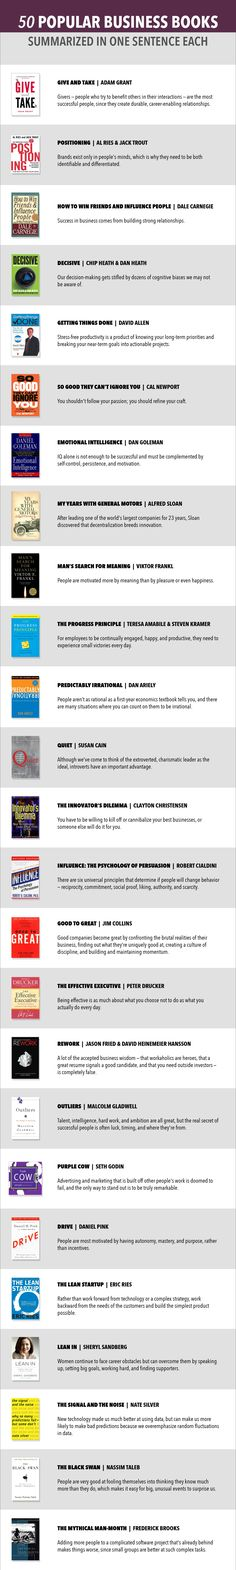 50 Business Books In One Sentence | BusinessInsider.com - I am going to turn this into my to-read list :-)